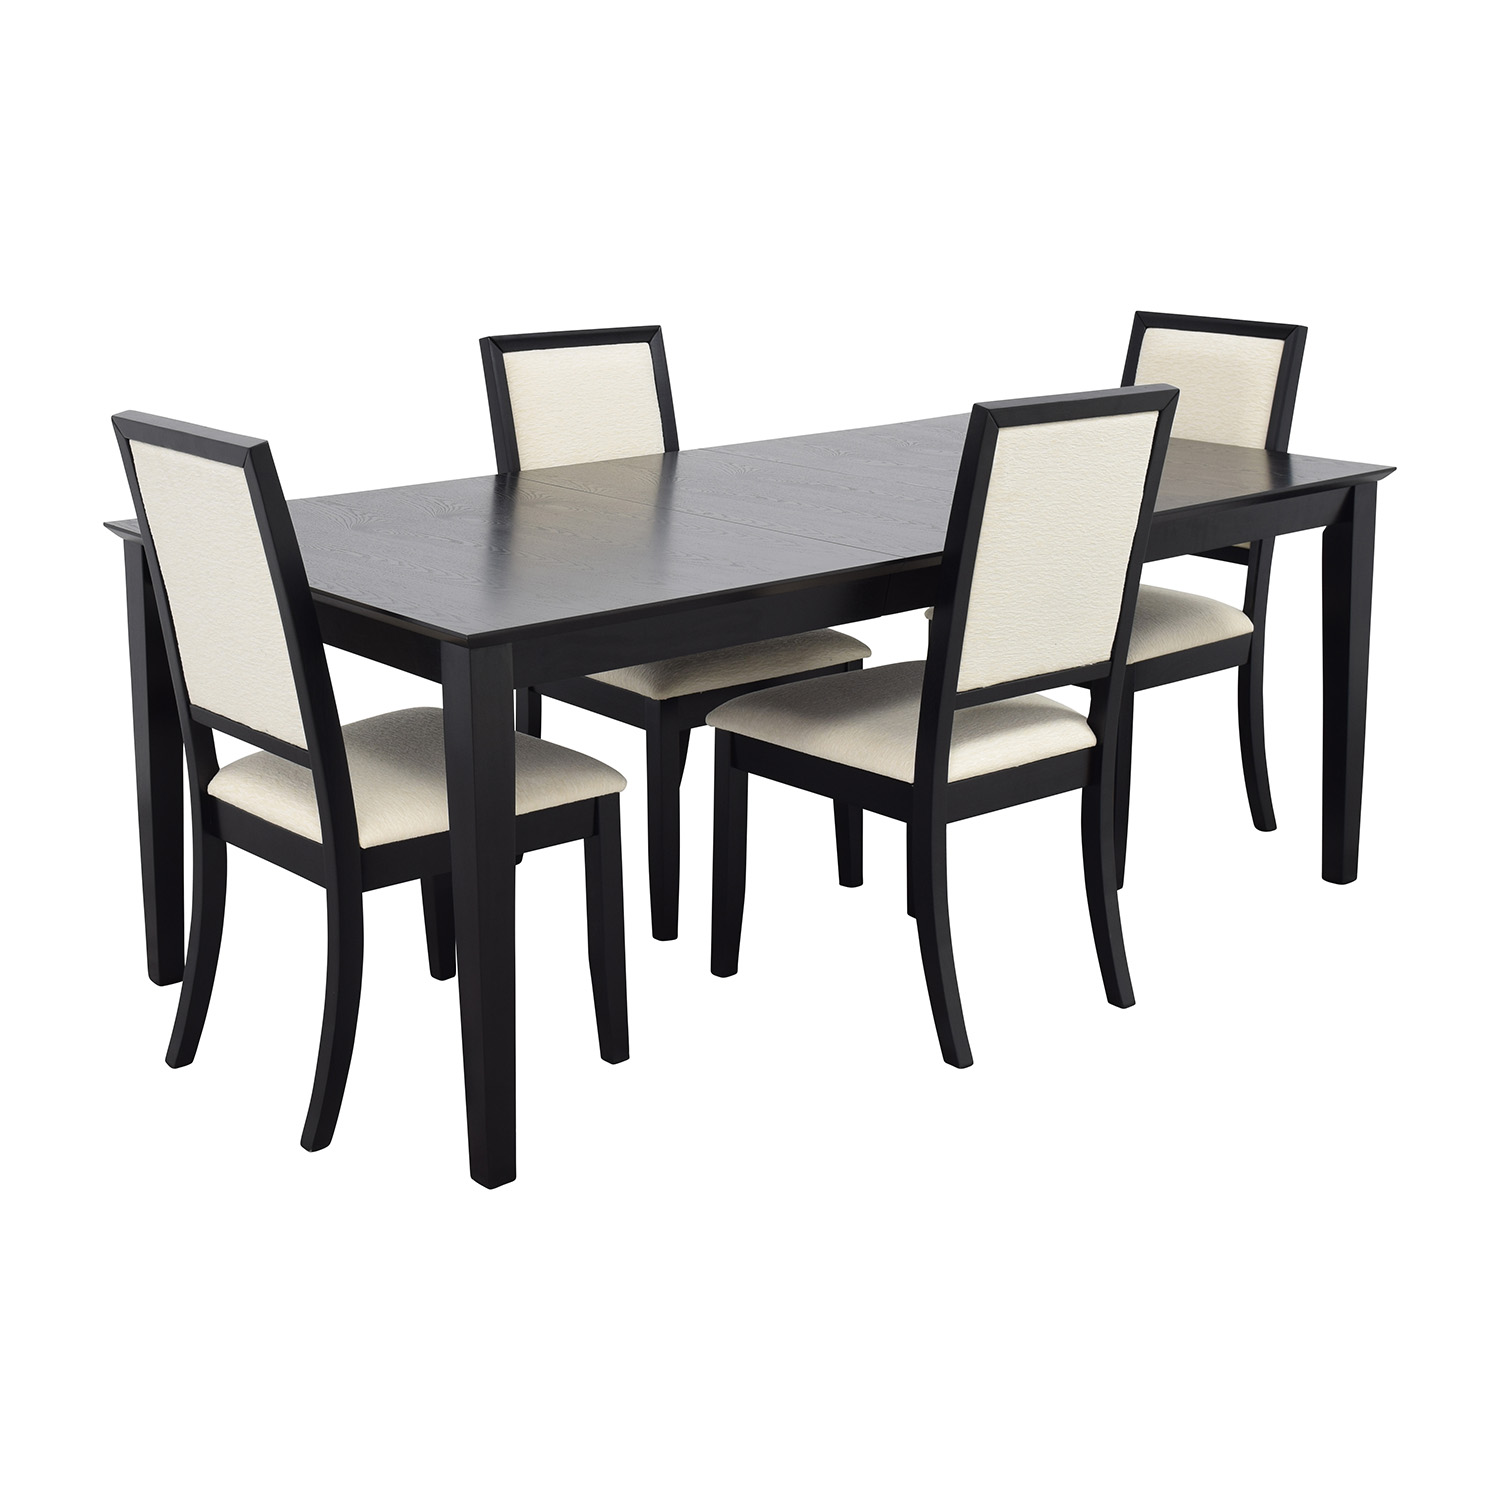 Harlem Furniture Harlem Furniture Black Dining